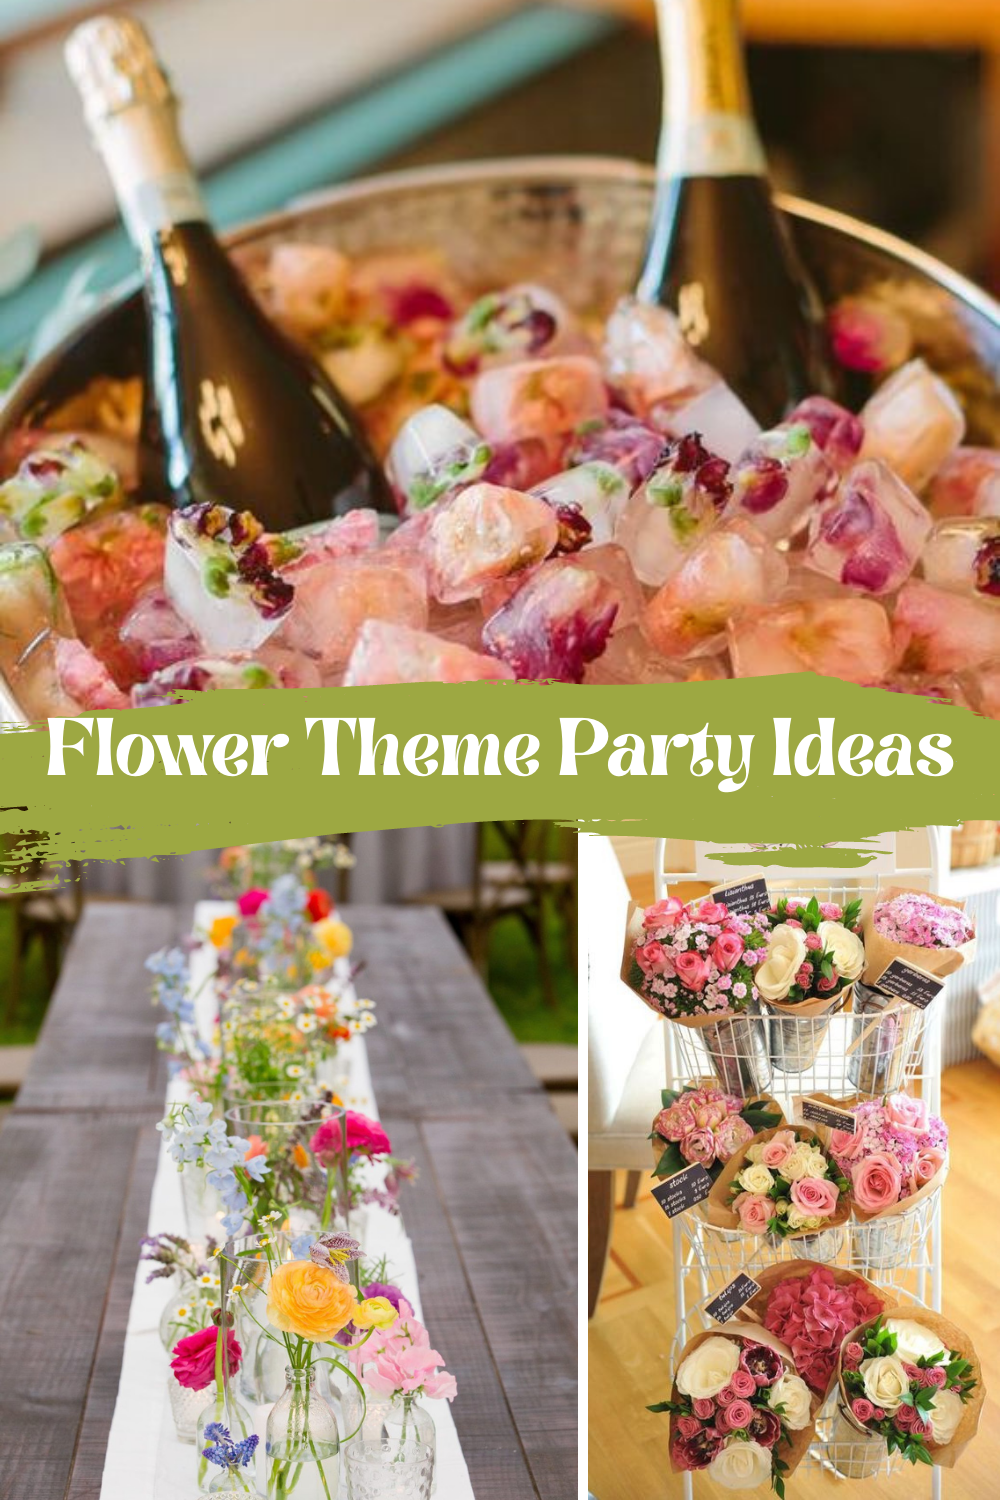 How To Throw A Flower Theme Party